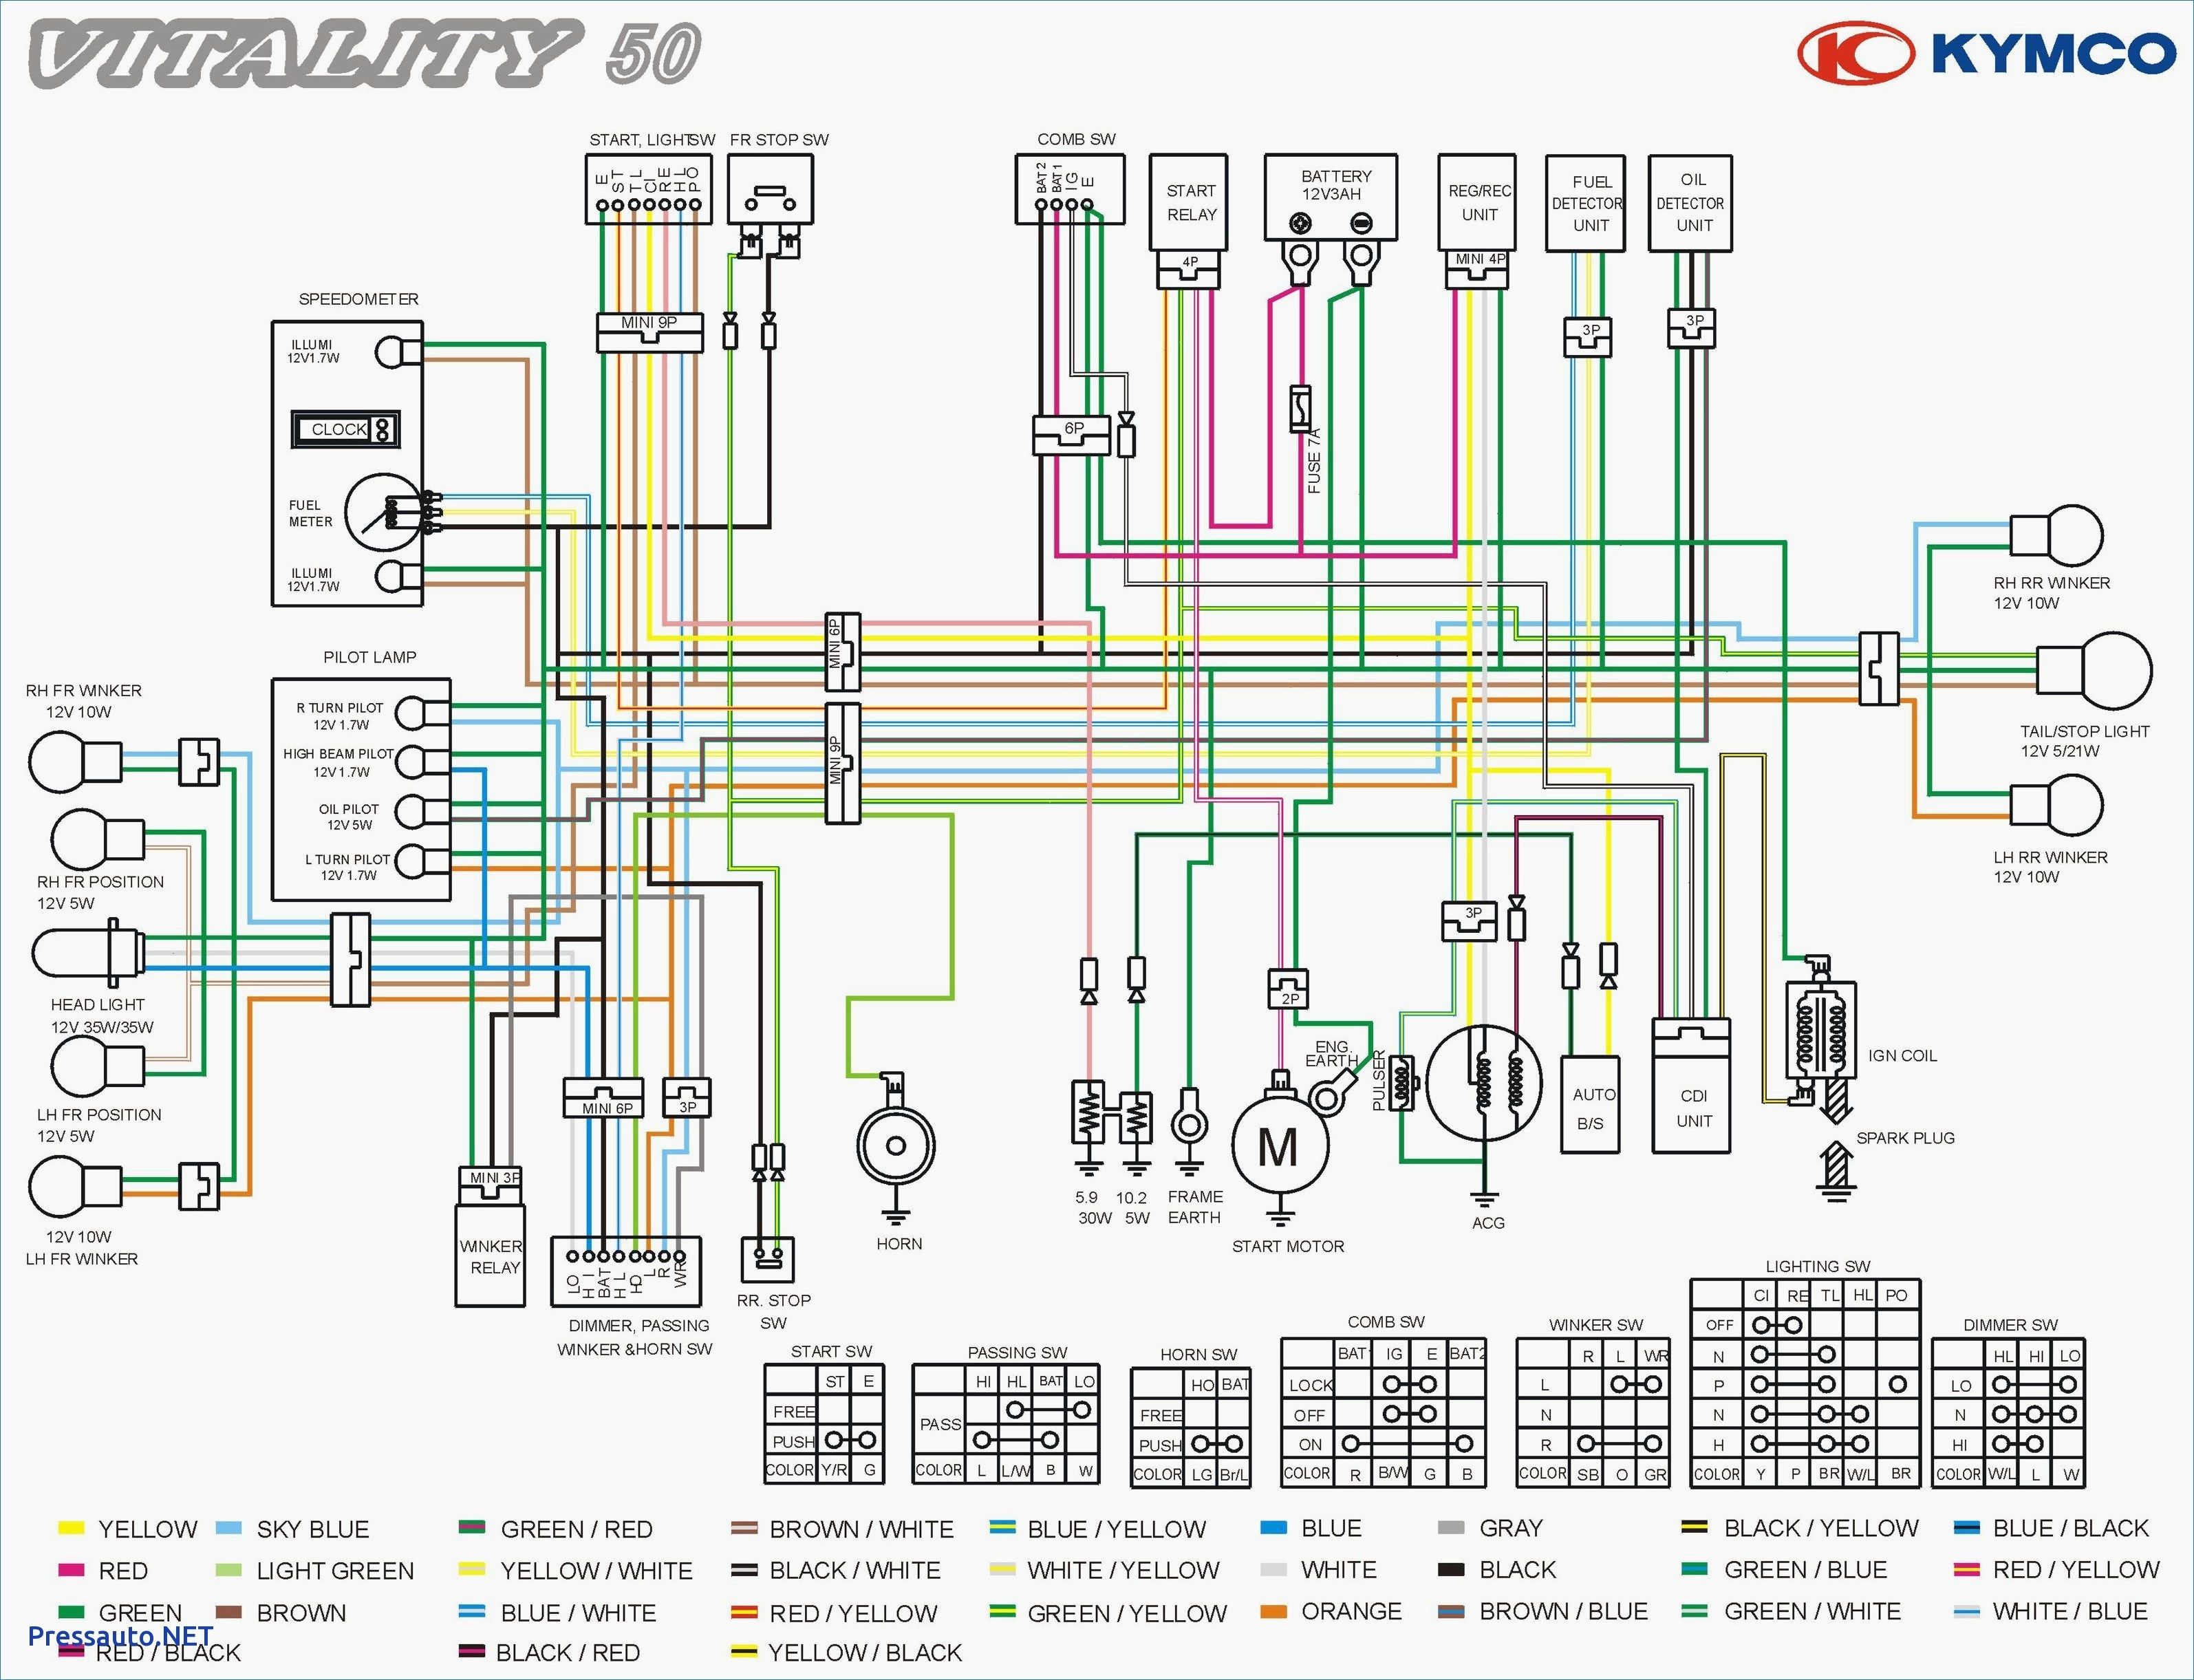 Wiring Diagram For Kymco Agility 50 Download Free And Https Pin